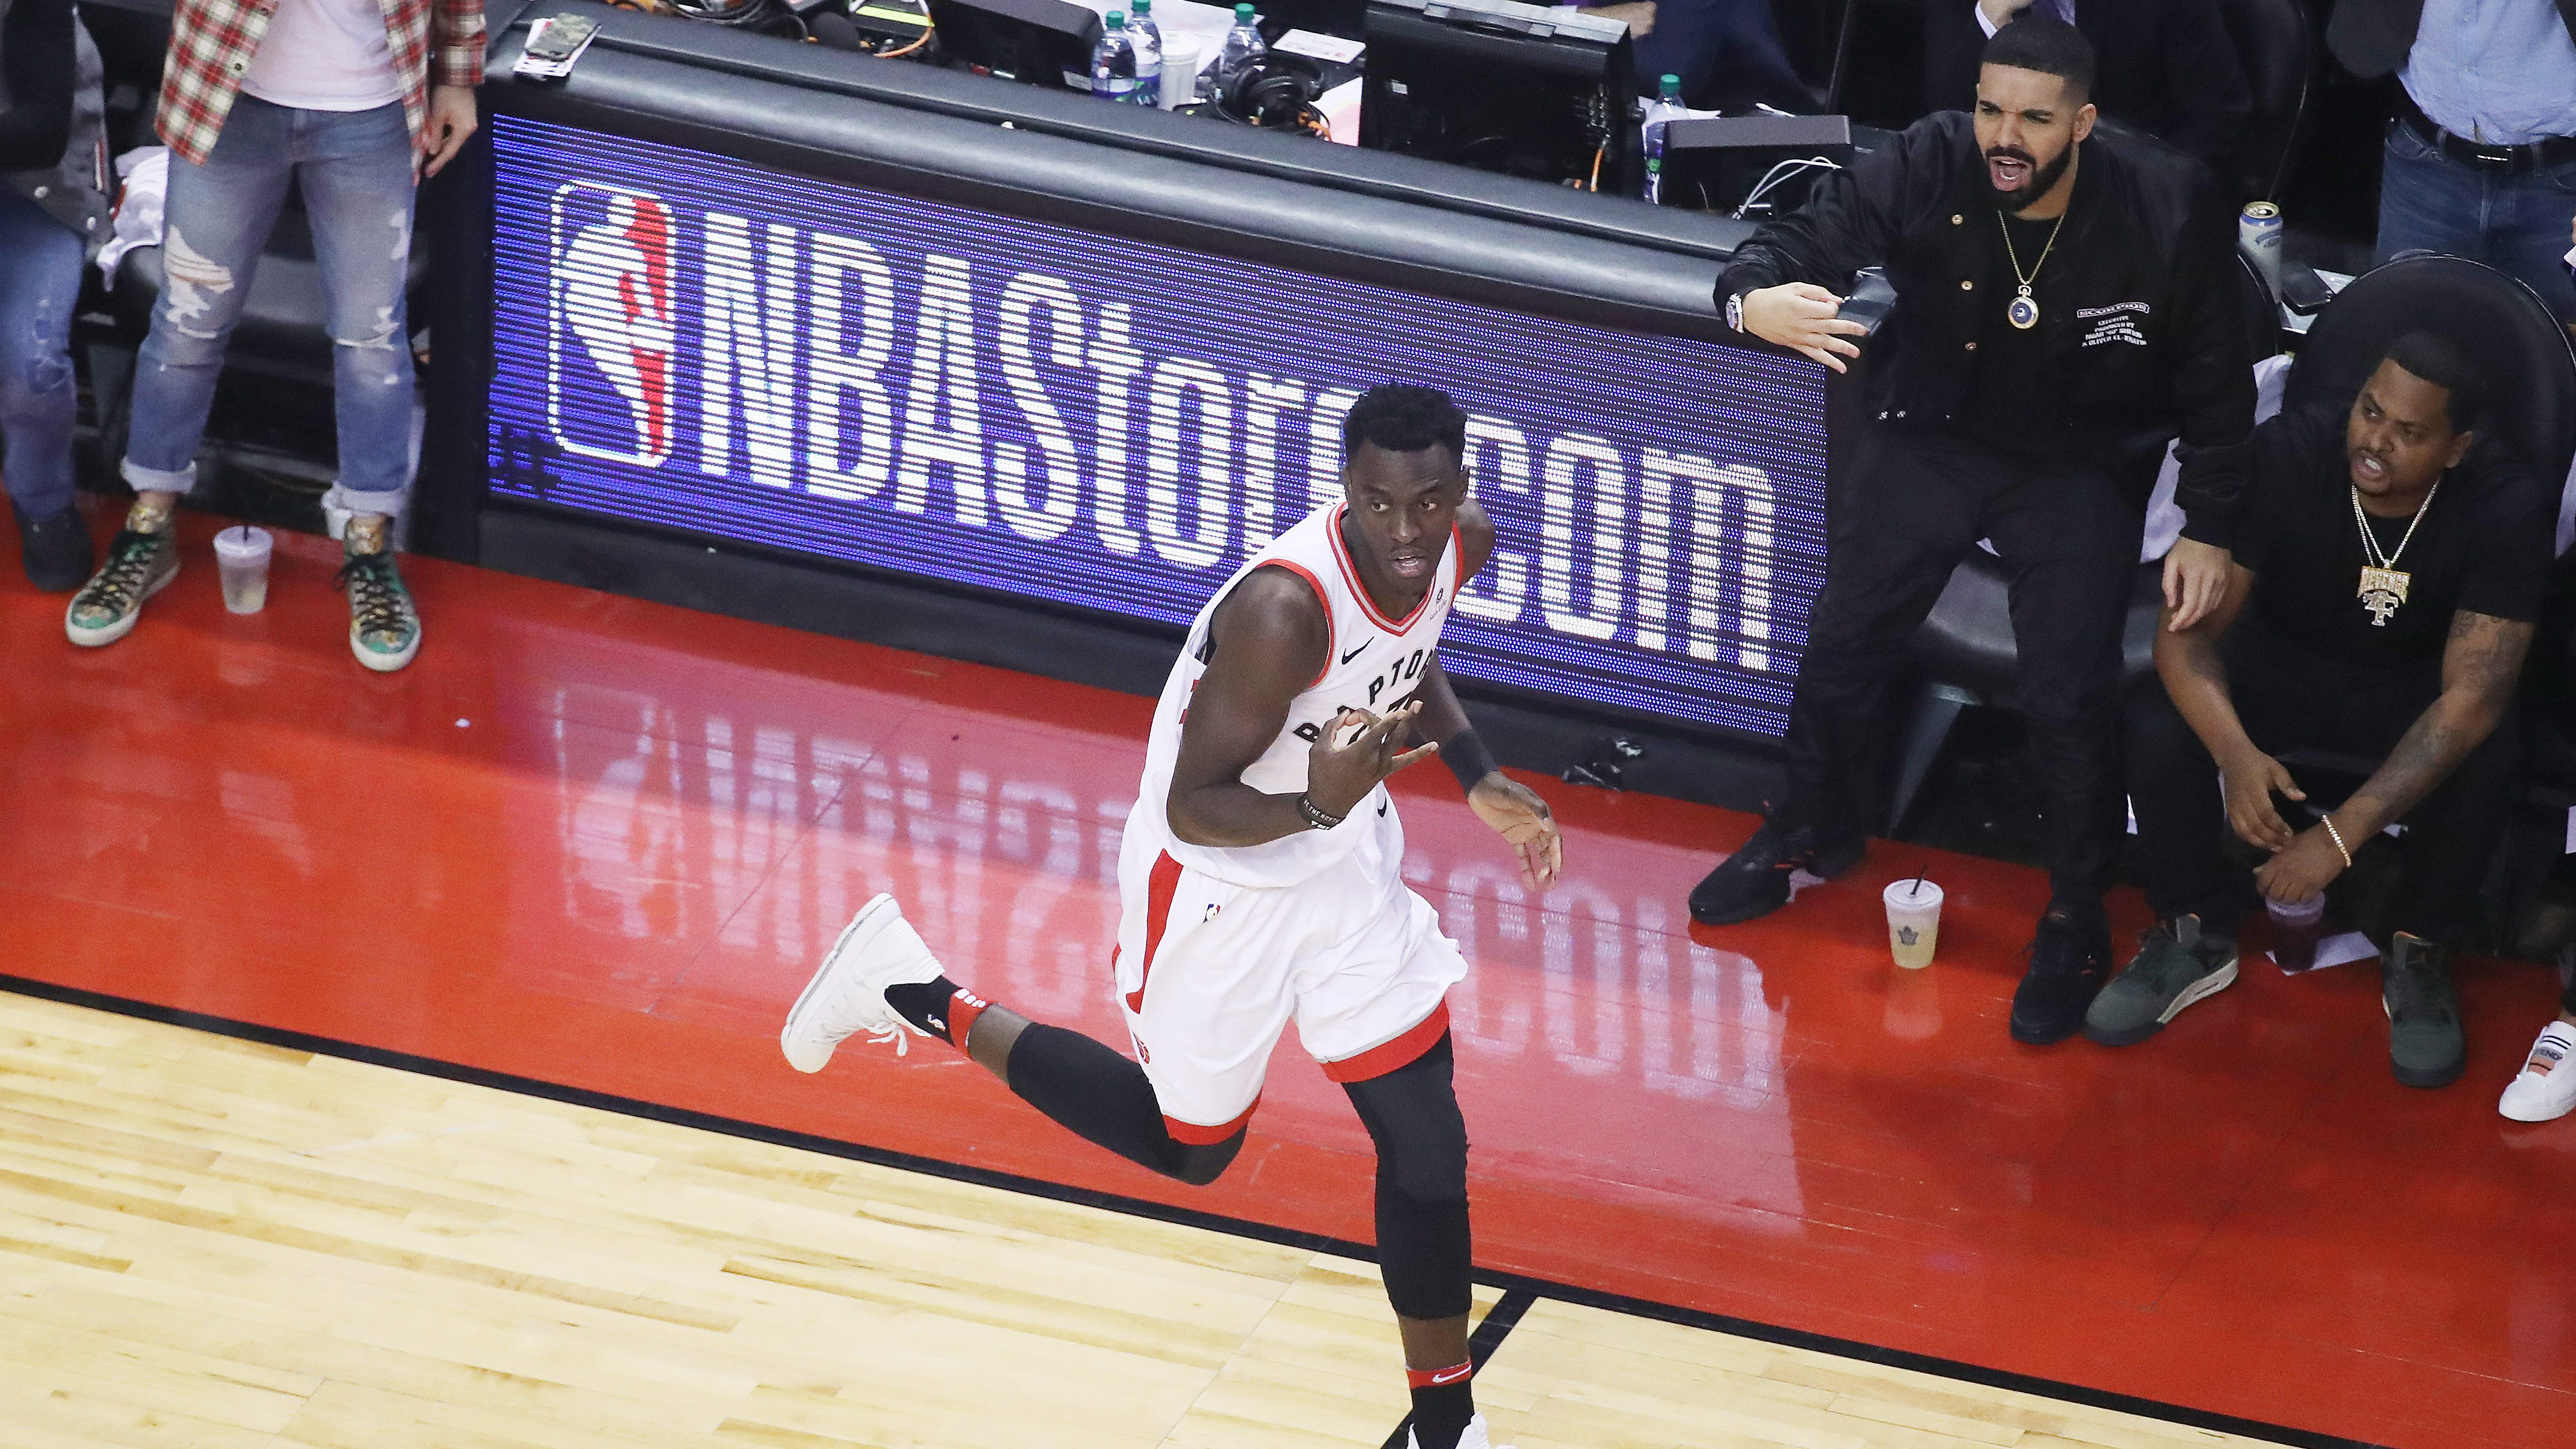 Toronto Raptors play the Cleveland Cavaliers in game 1 of the second round of the NBA playoffs